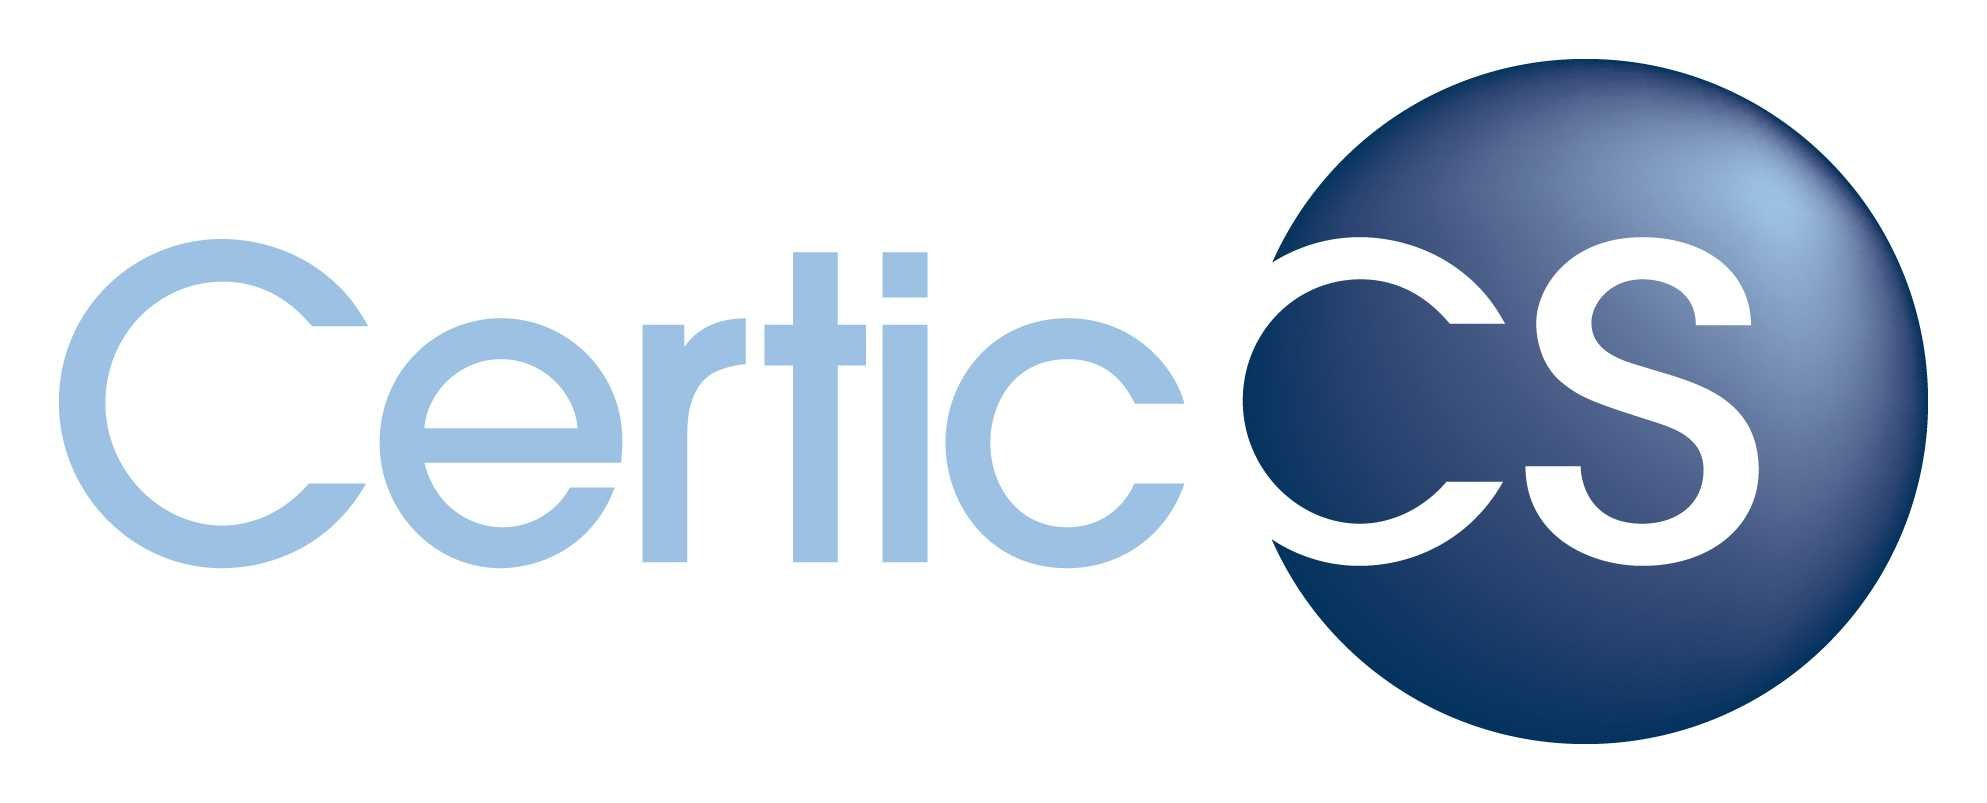 CerticCS approval in Republic of Ireland